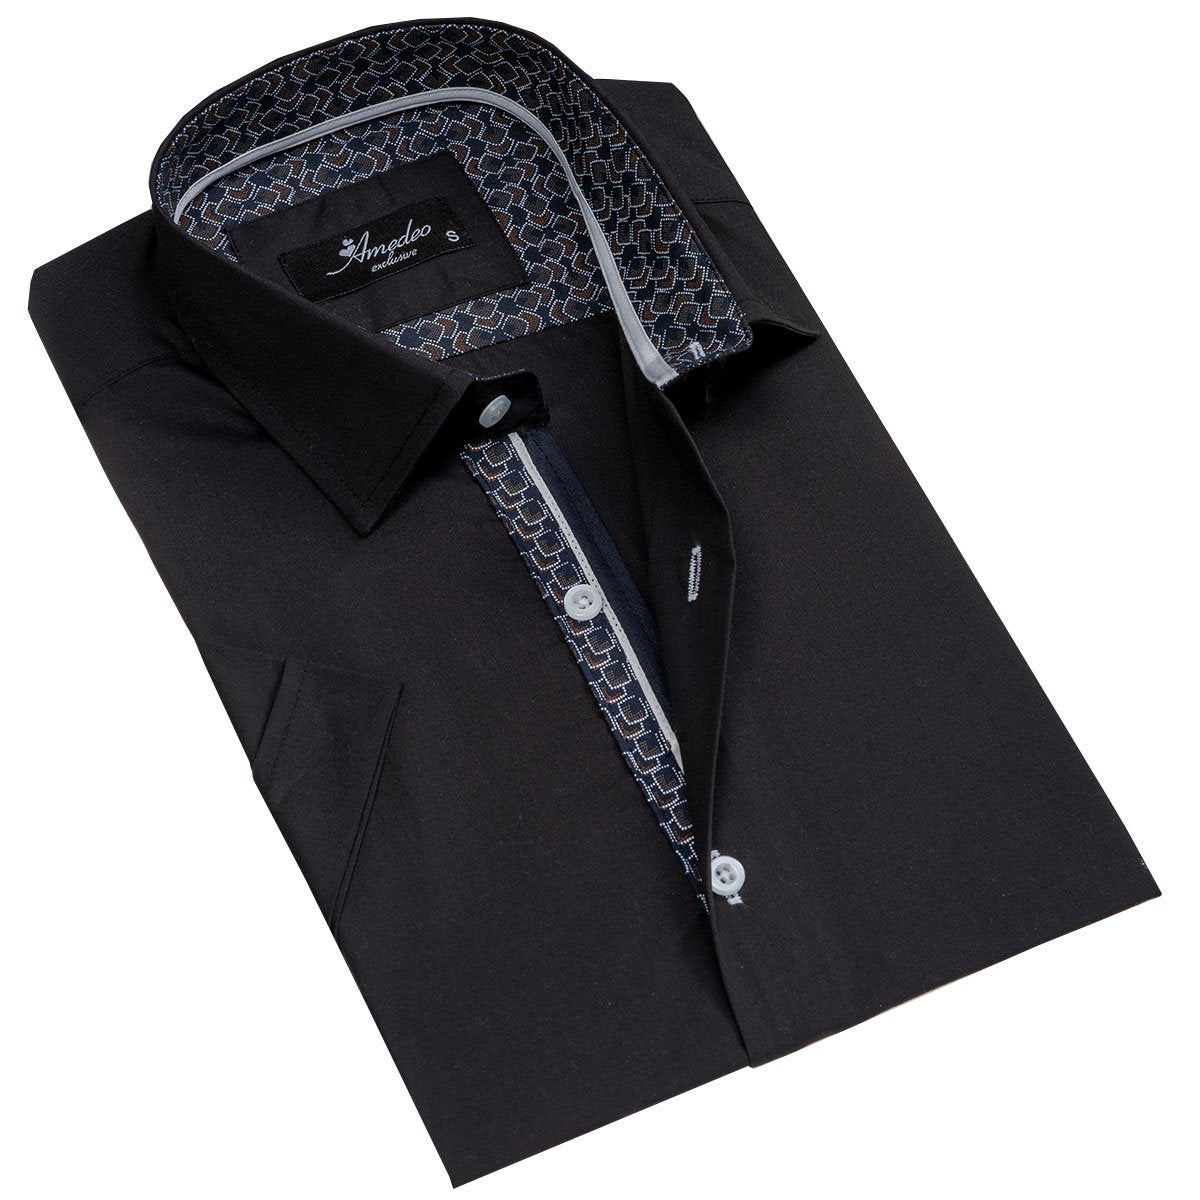 Men's Button down Tailor Fit Soft 100% Cotton Short Sleeve Dress Shirt Solid Black casual And Formal - Amedeo Exclusive